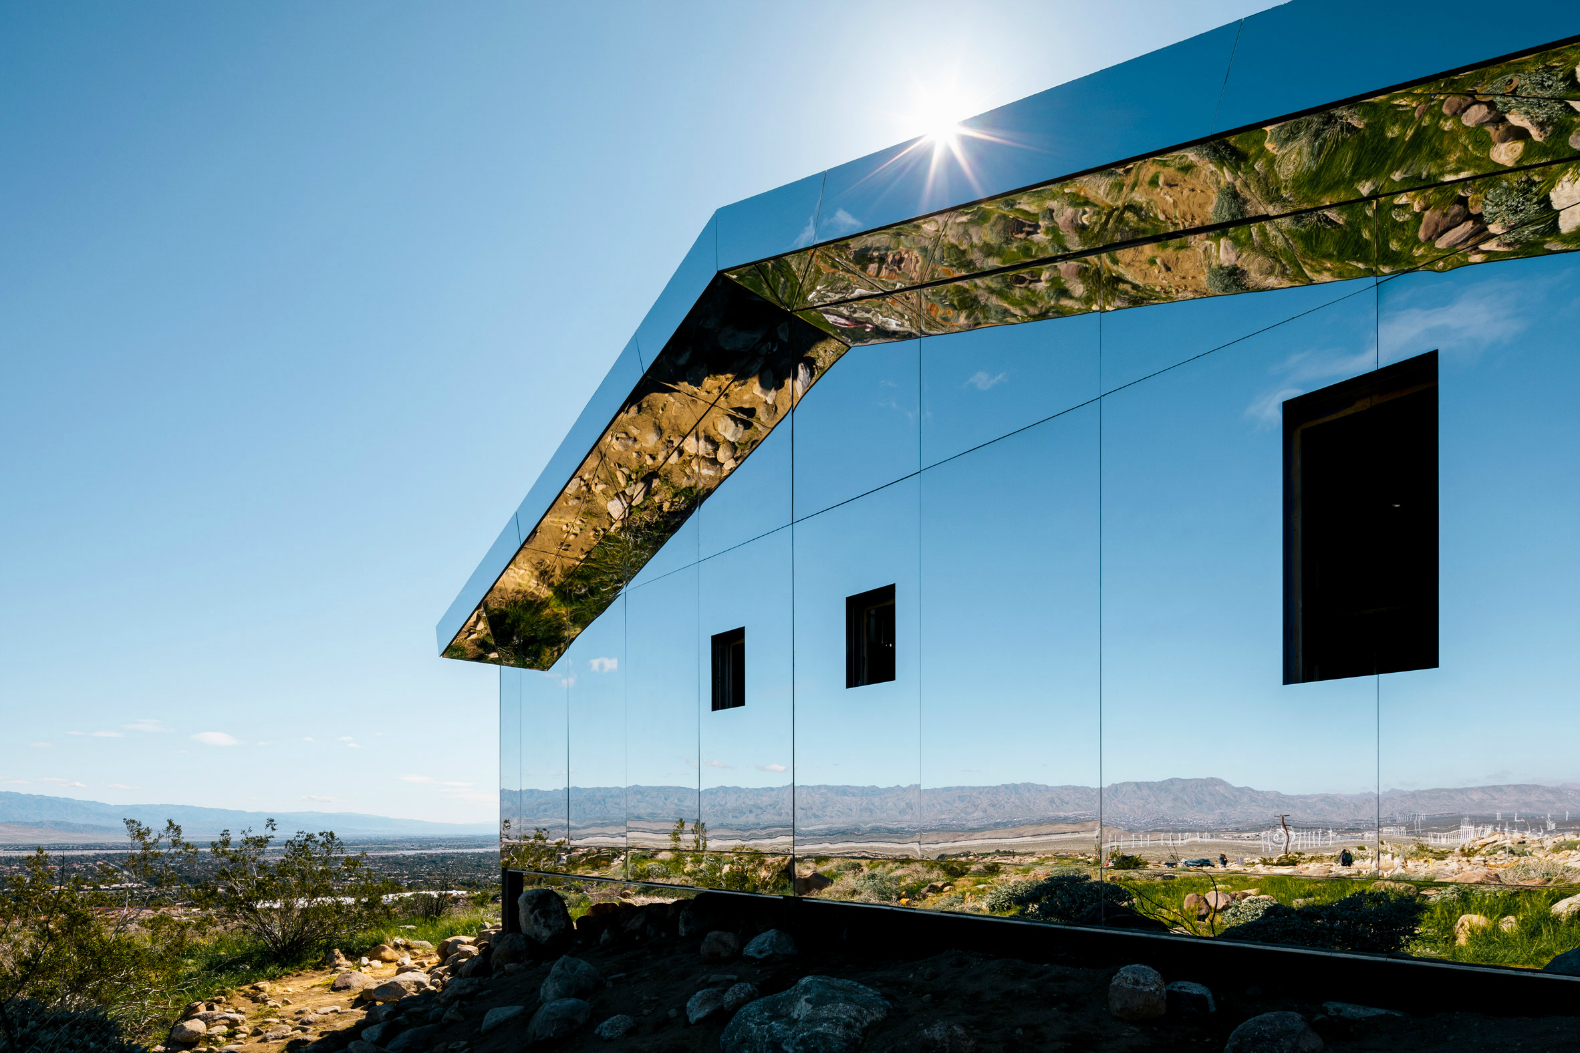 Artist Doug Aitken Work Has Installed A Completely Mirror Clad House In The Middle Of California S Coaca Valley Mirage Which Is Modeled After